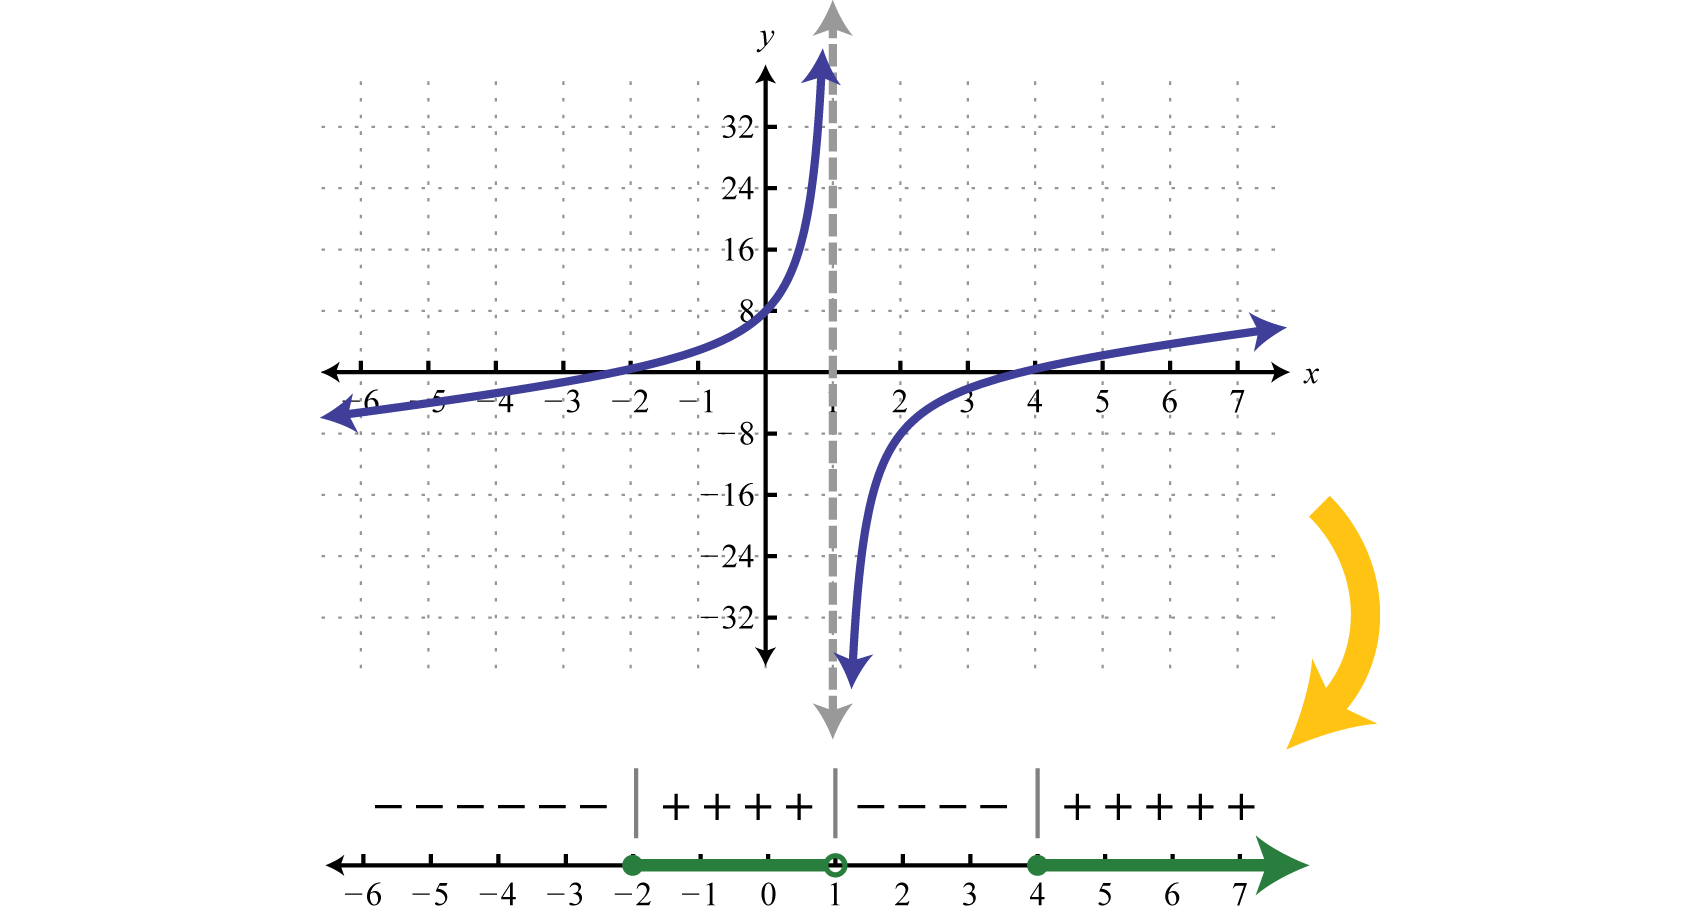 Notice That The Restriction X=1 Corresponds To A Vertical Asymptote Which  Bounds Regions Where The Function Changes From Positive To Negative